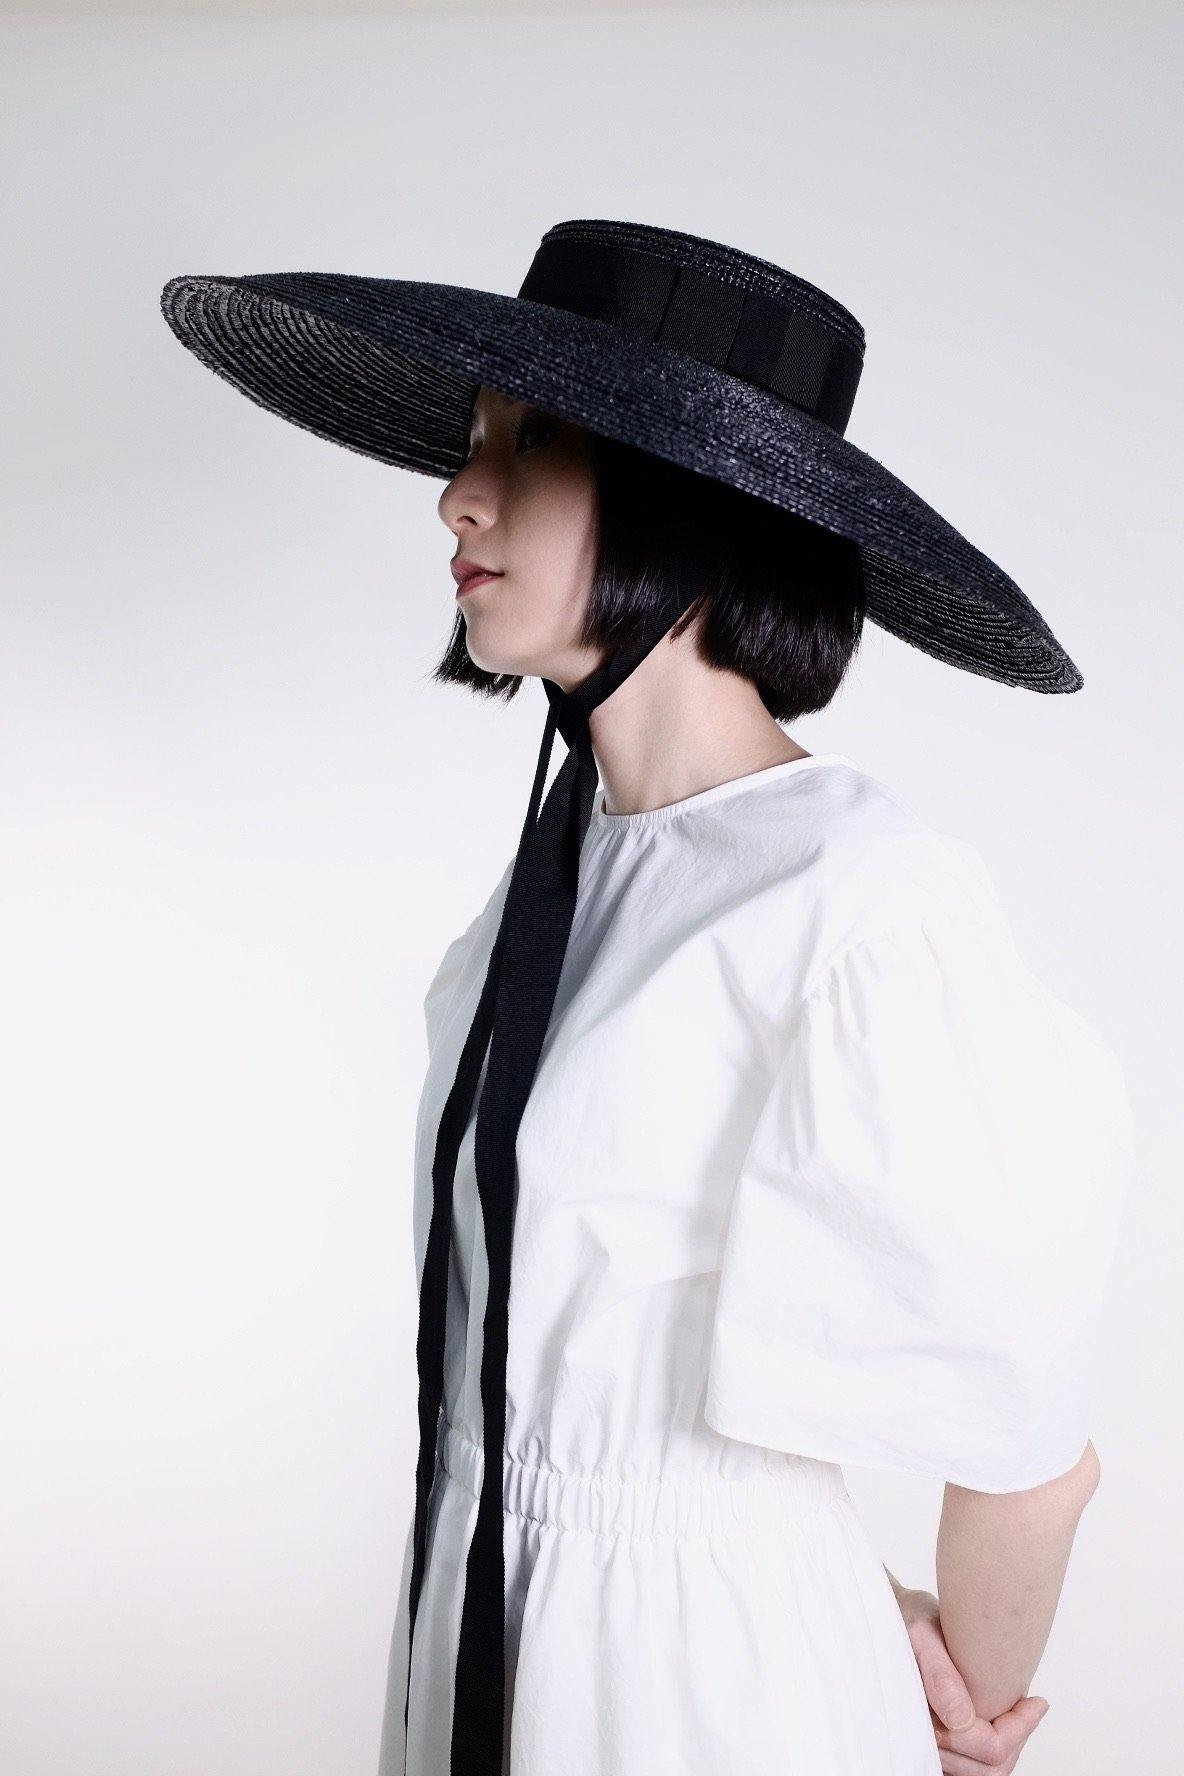 Wide Mushroom Collared monarch hat - Black